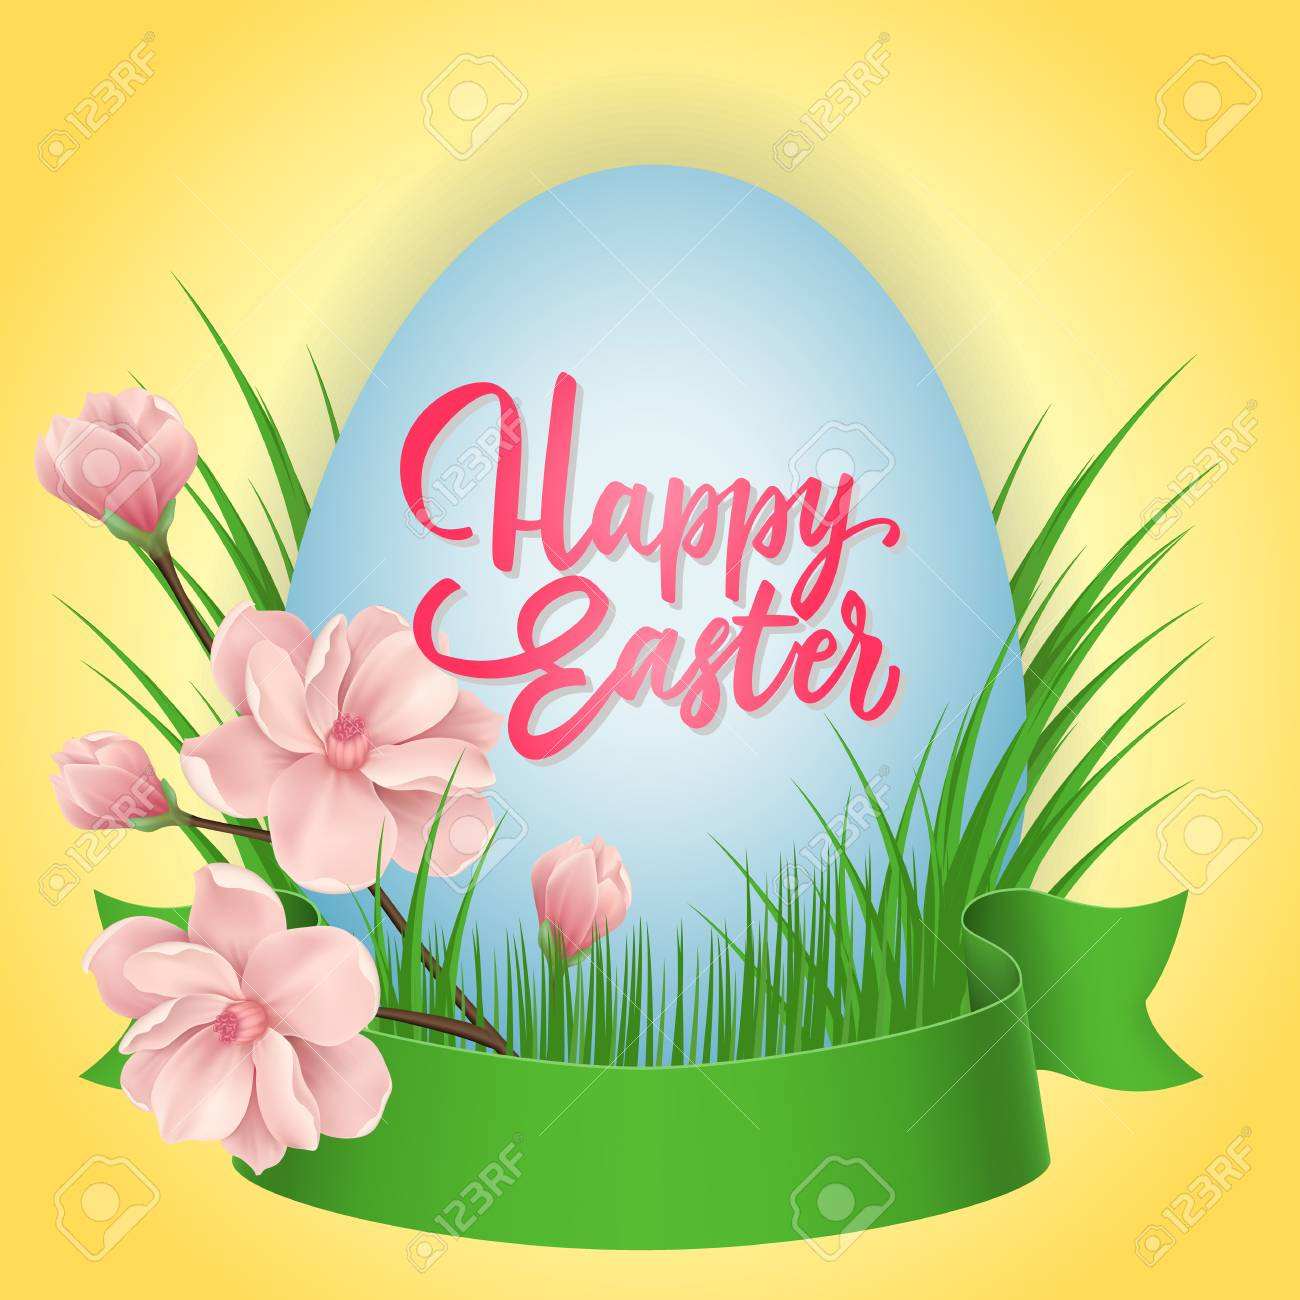 Happy Easter Lettering On Egg Easter Greeting Card With Ribbon